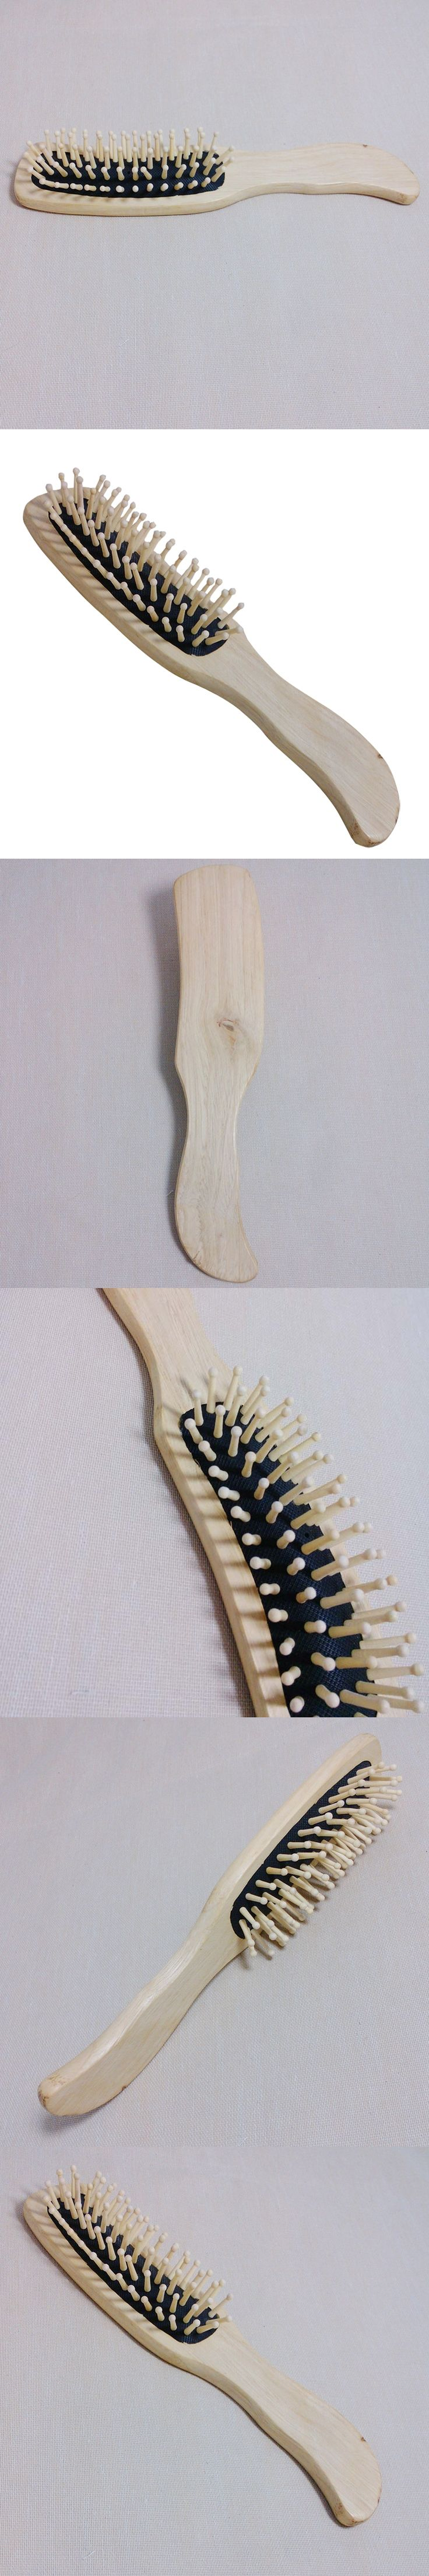 Natural Bamboo 1Pc Wooden Hair Vent Paddle Brush Hair Keratin Care Spa Massage Antistatic Comb Styling Brushes Tools YF2017